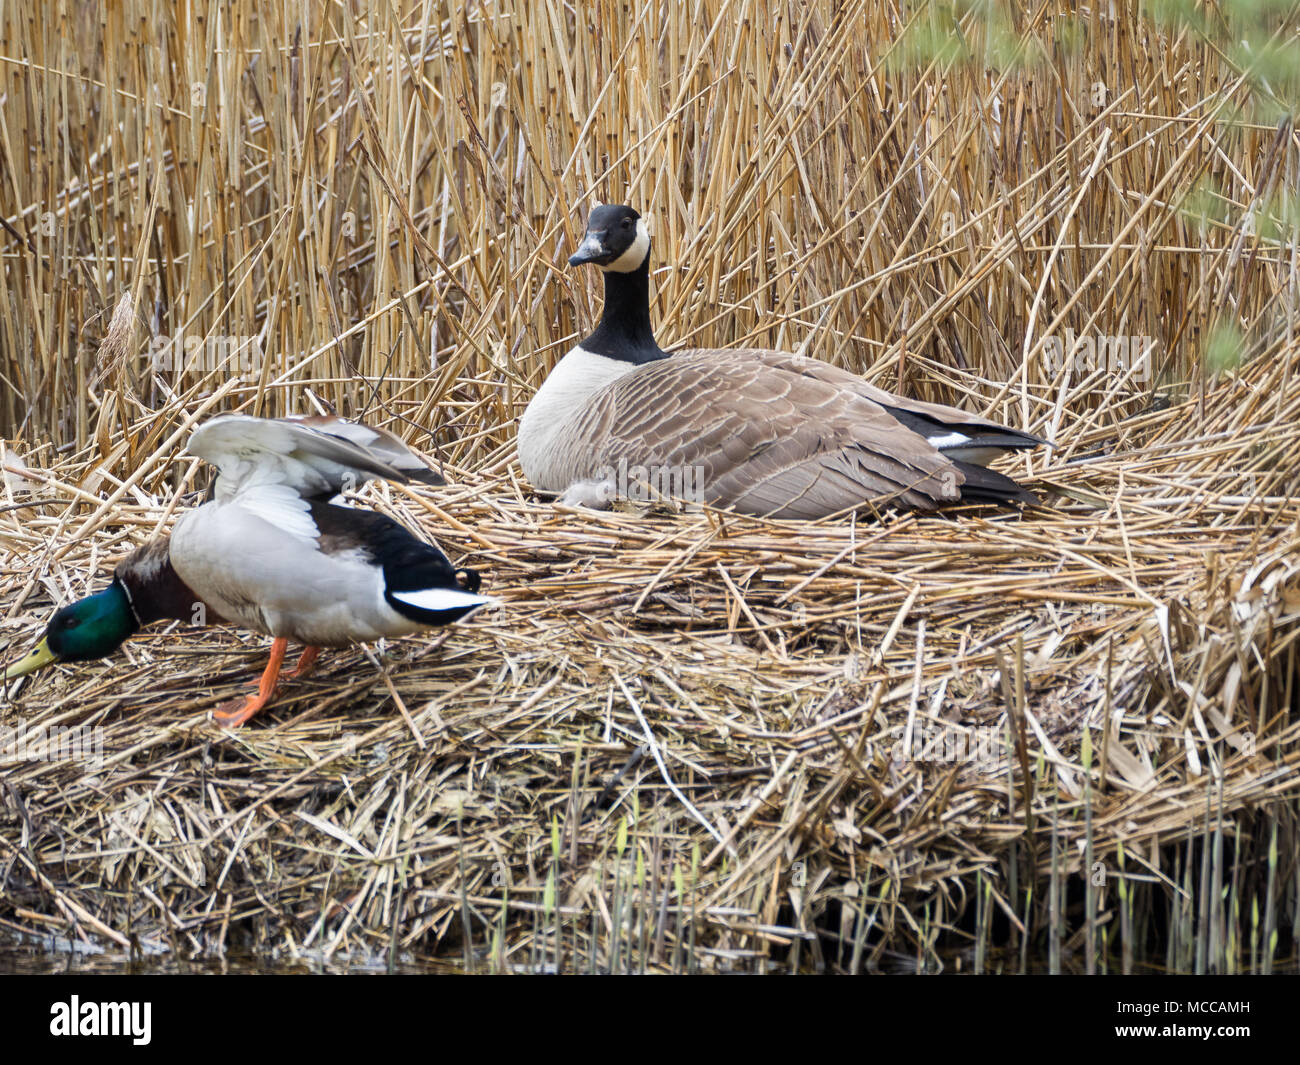 Nesting Canada Goose, Teifi Marshes, Wales Stock Photo